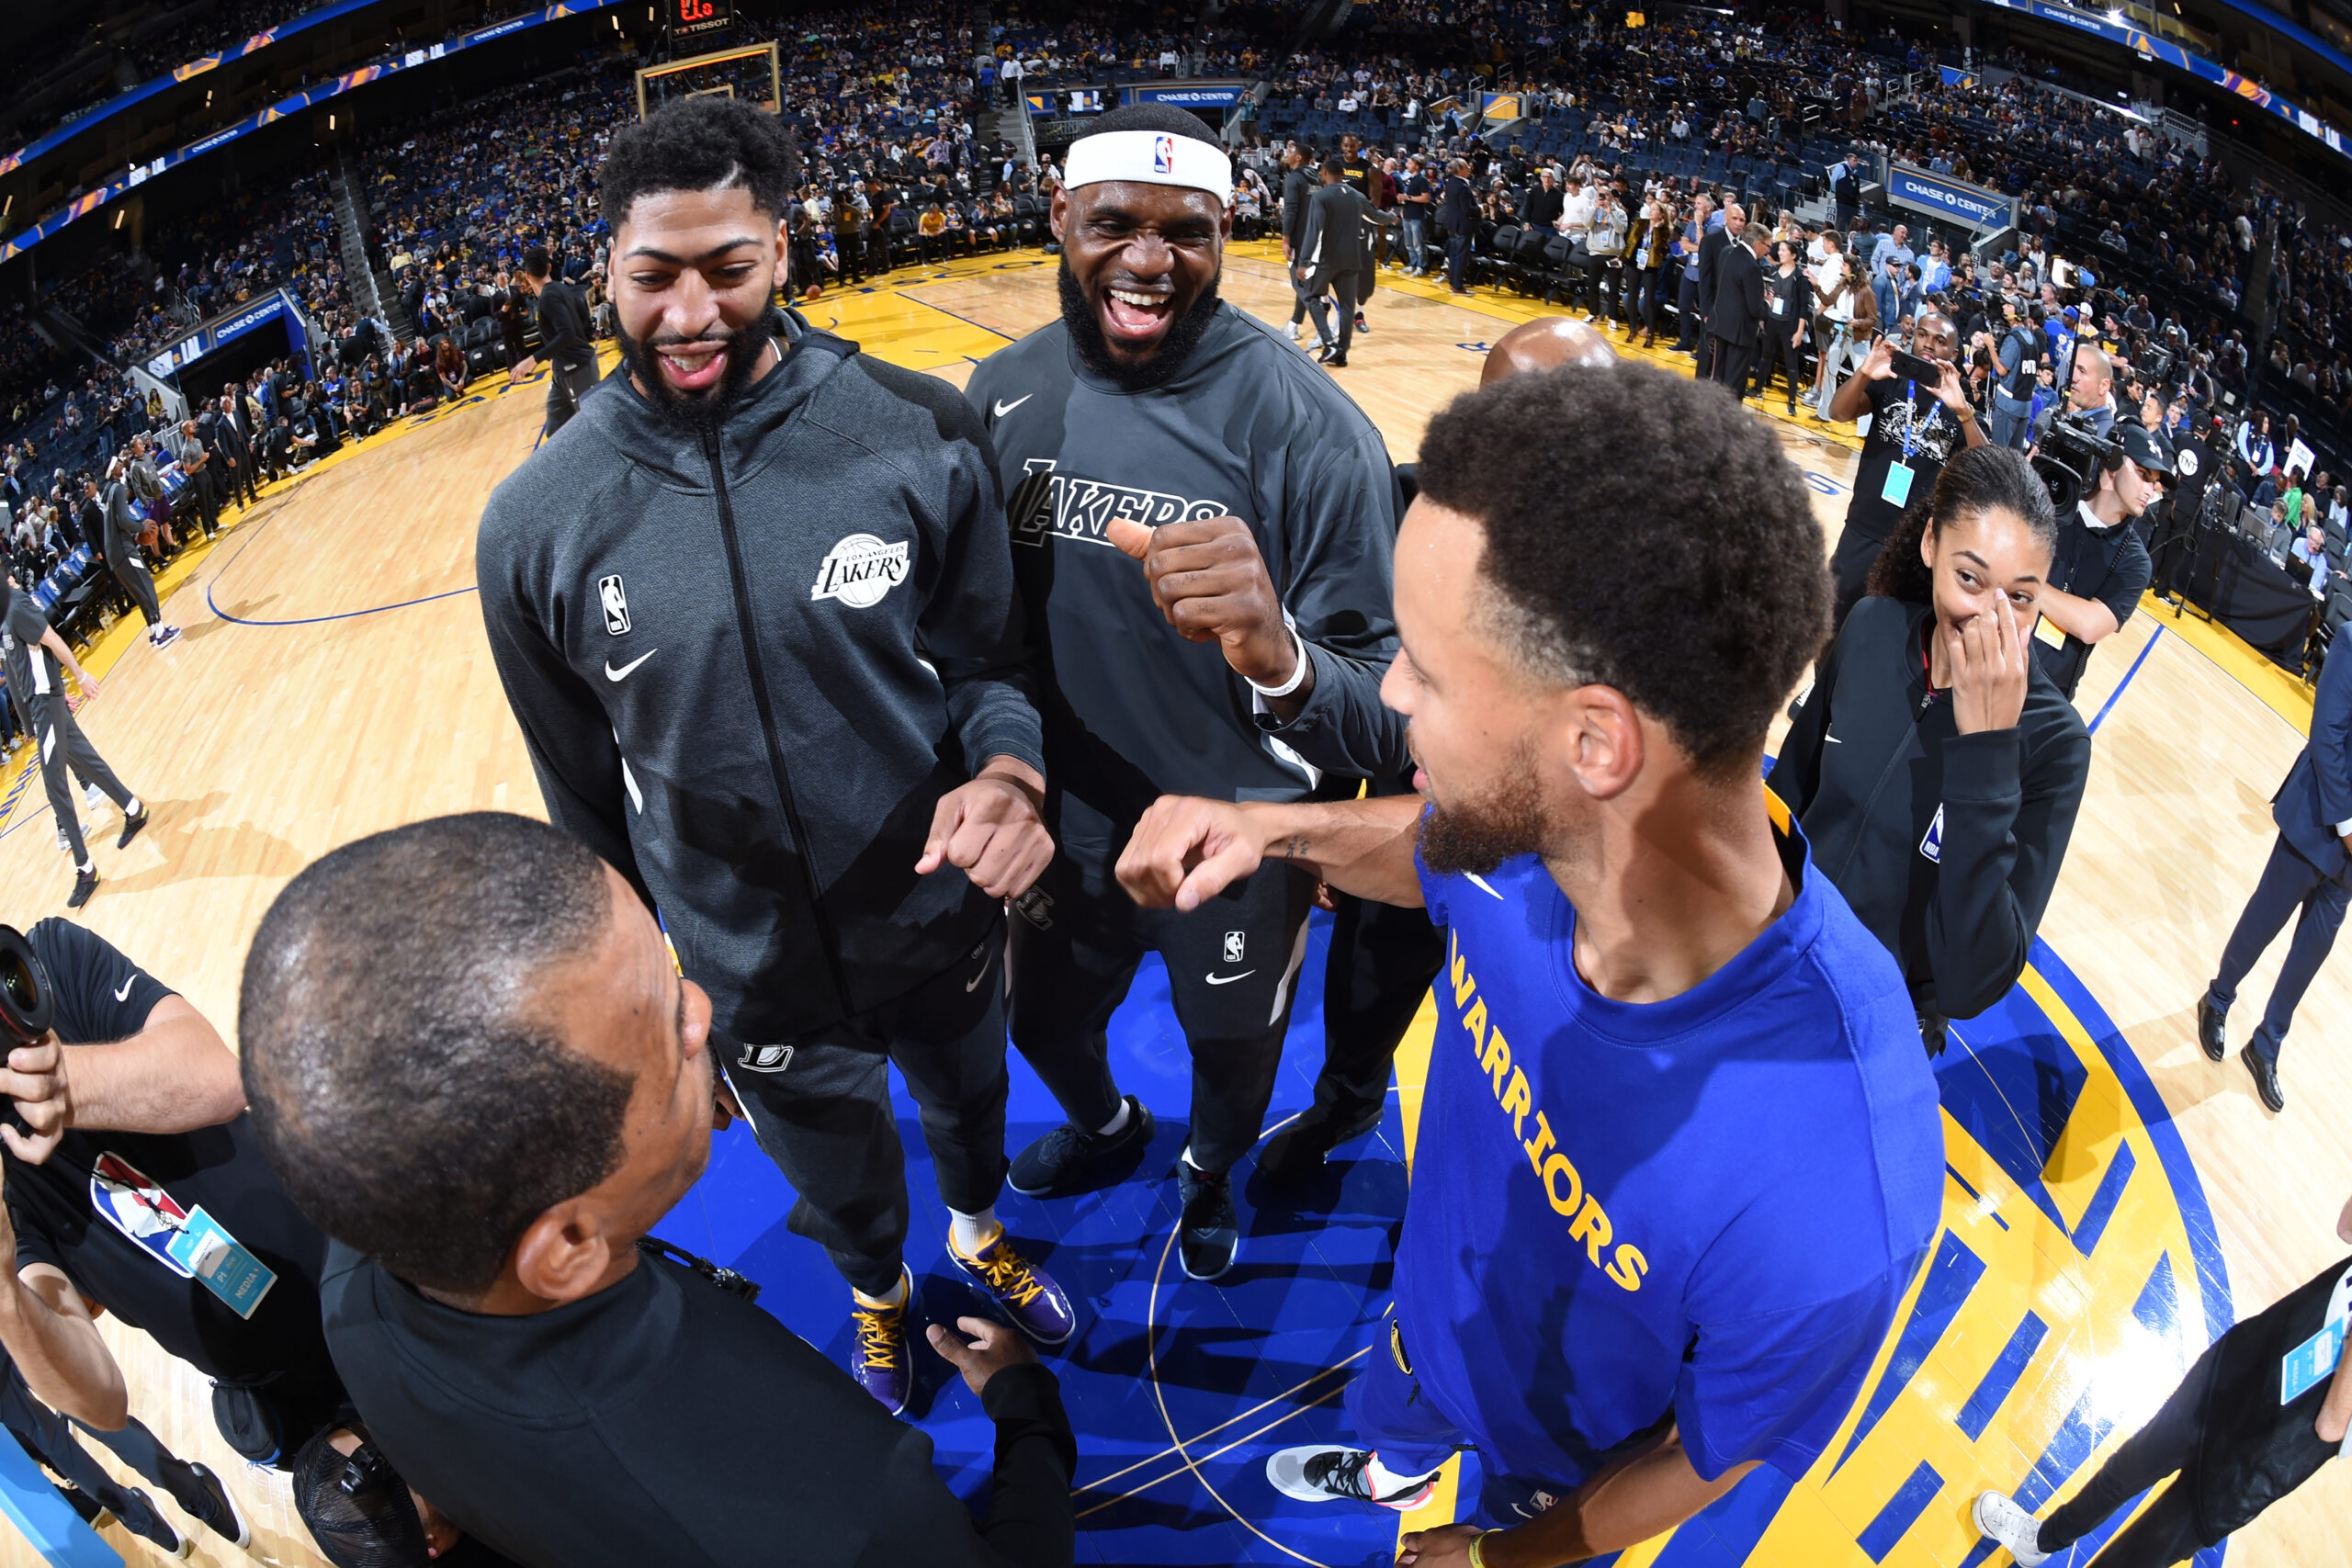 LeBron James vs. Stephen Curry marks Play-In Tournament showdown